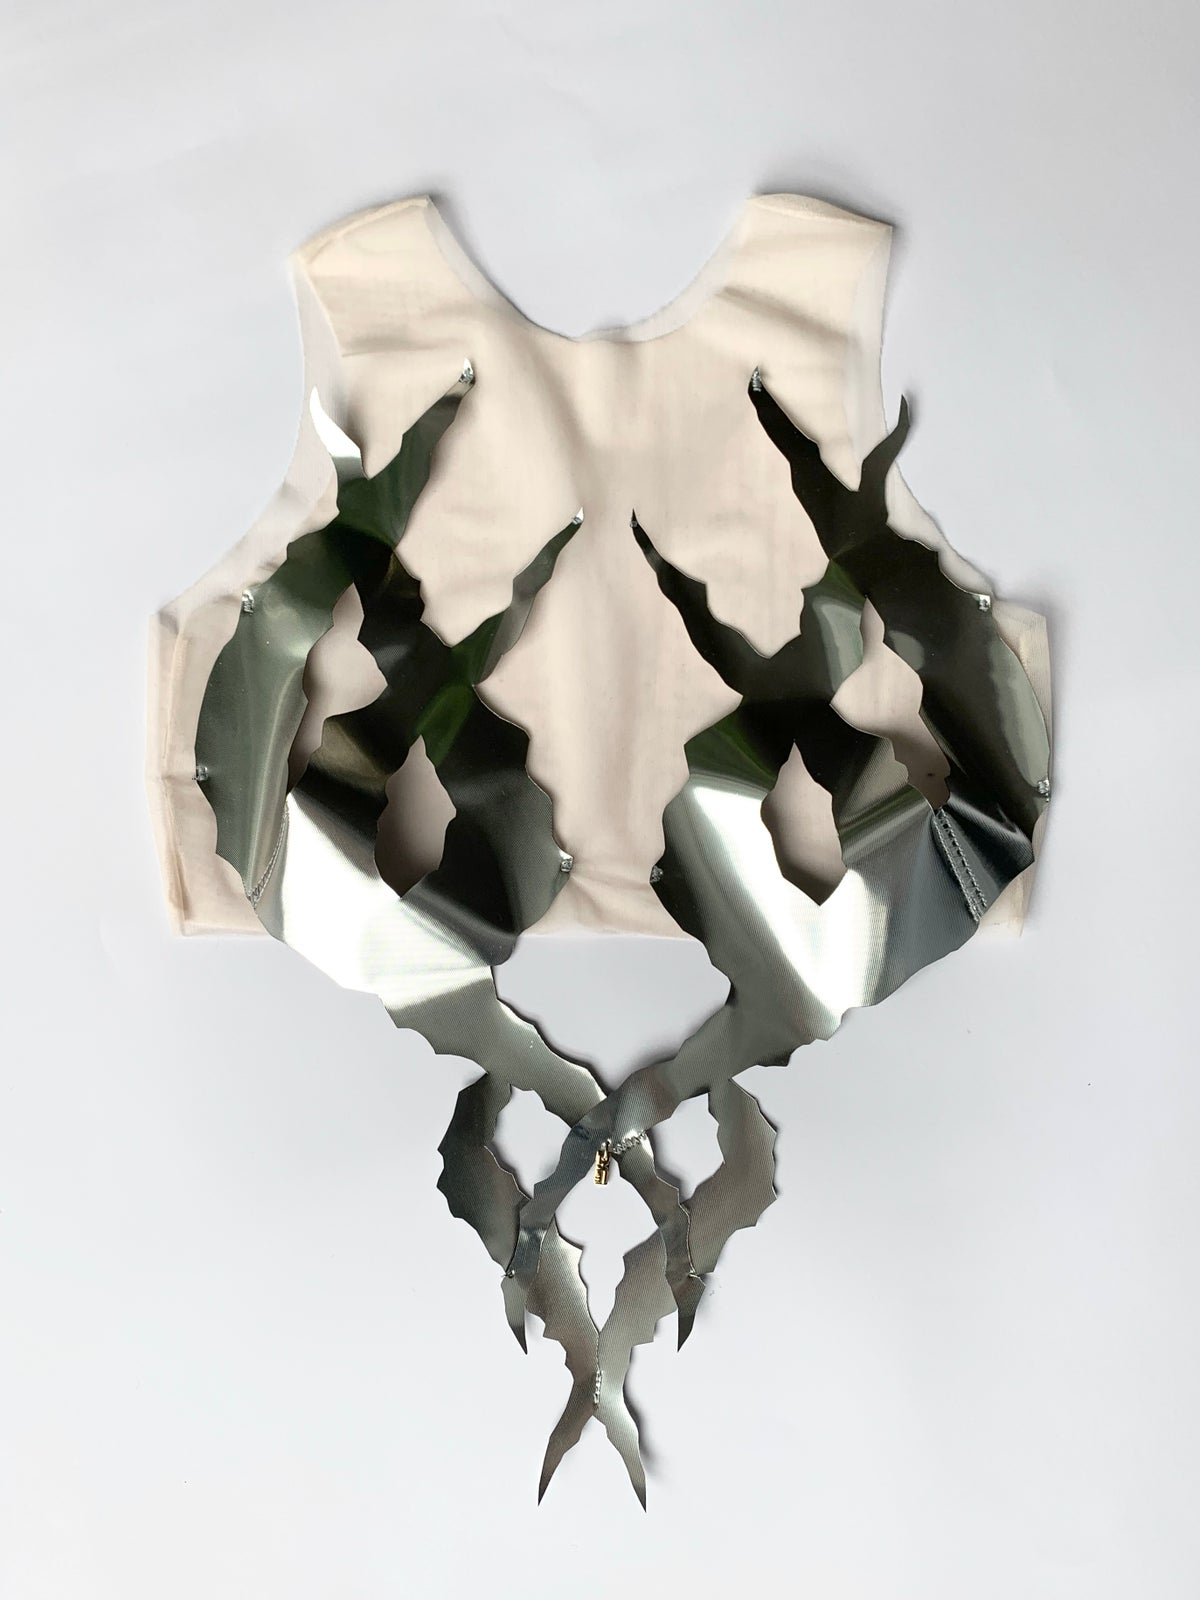 Image of Ungeziefer' silver tentacle top